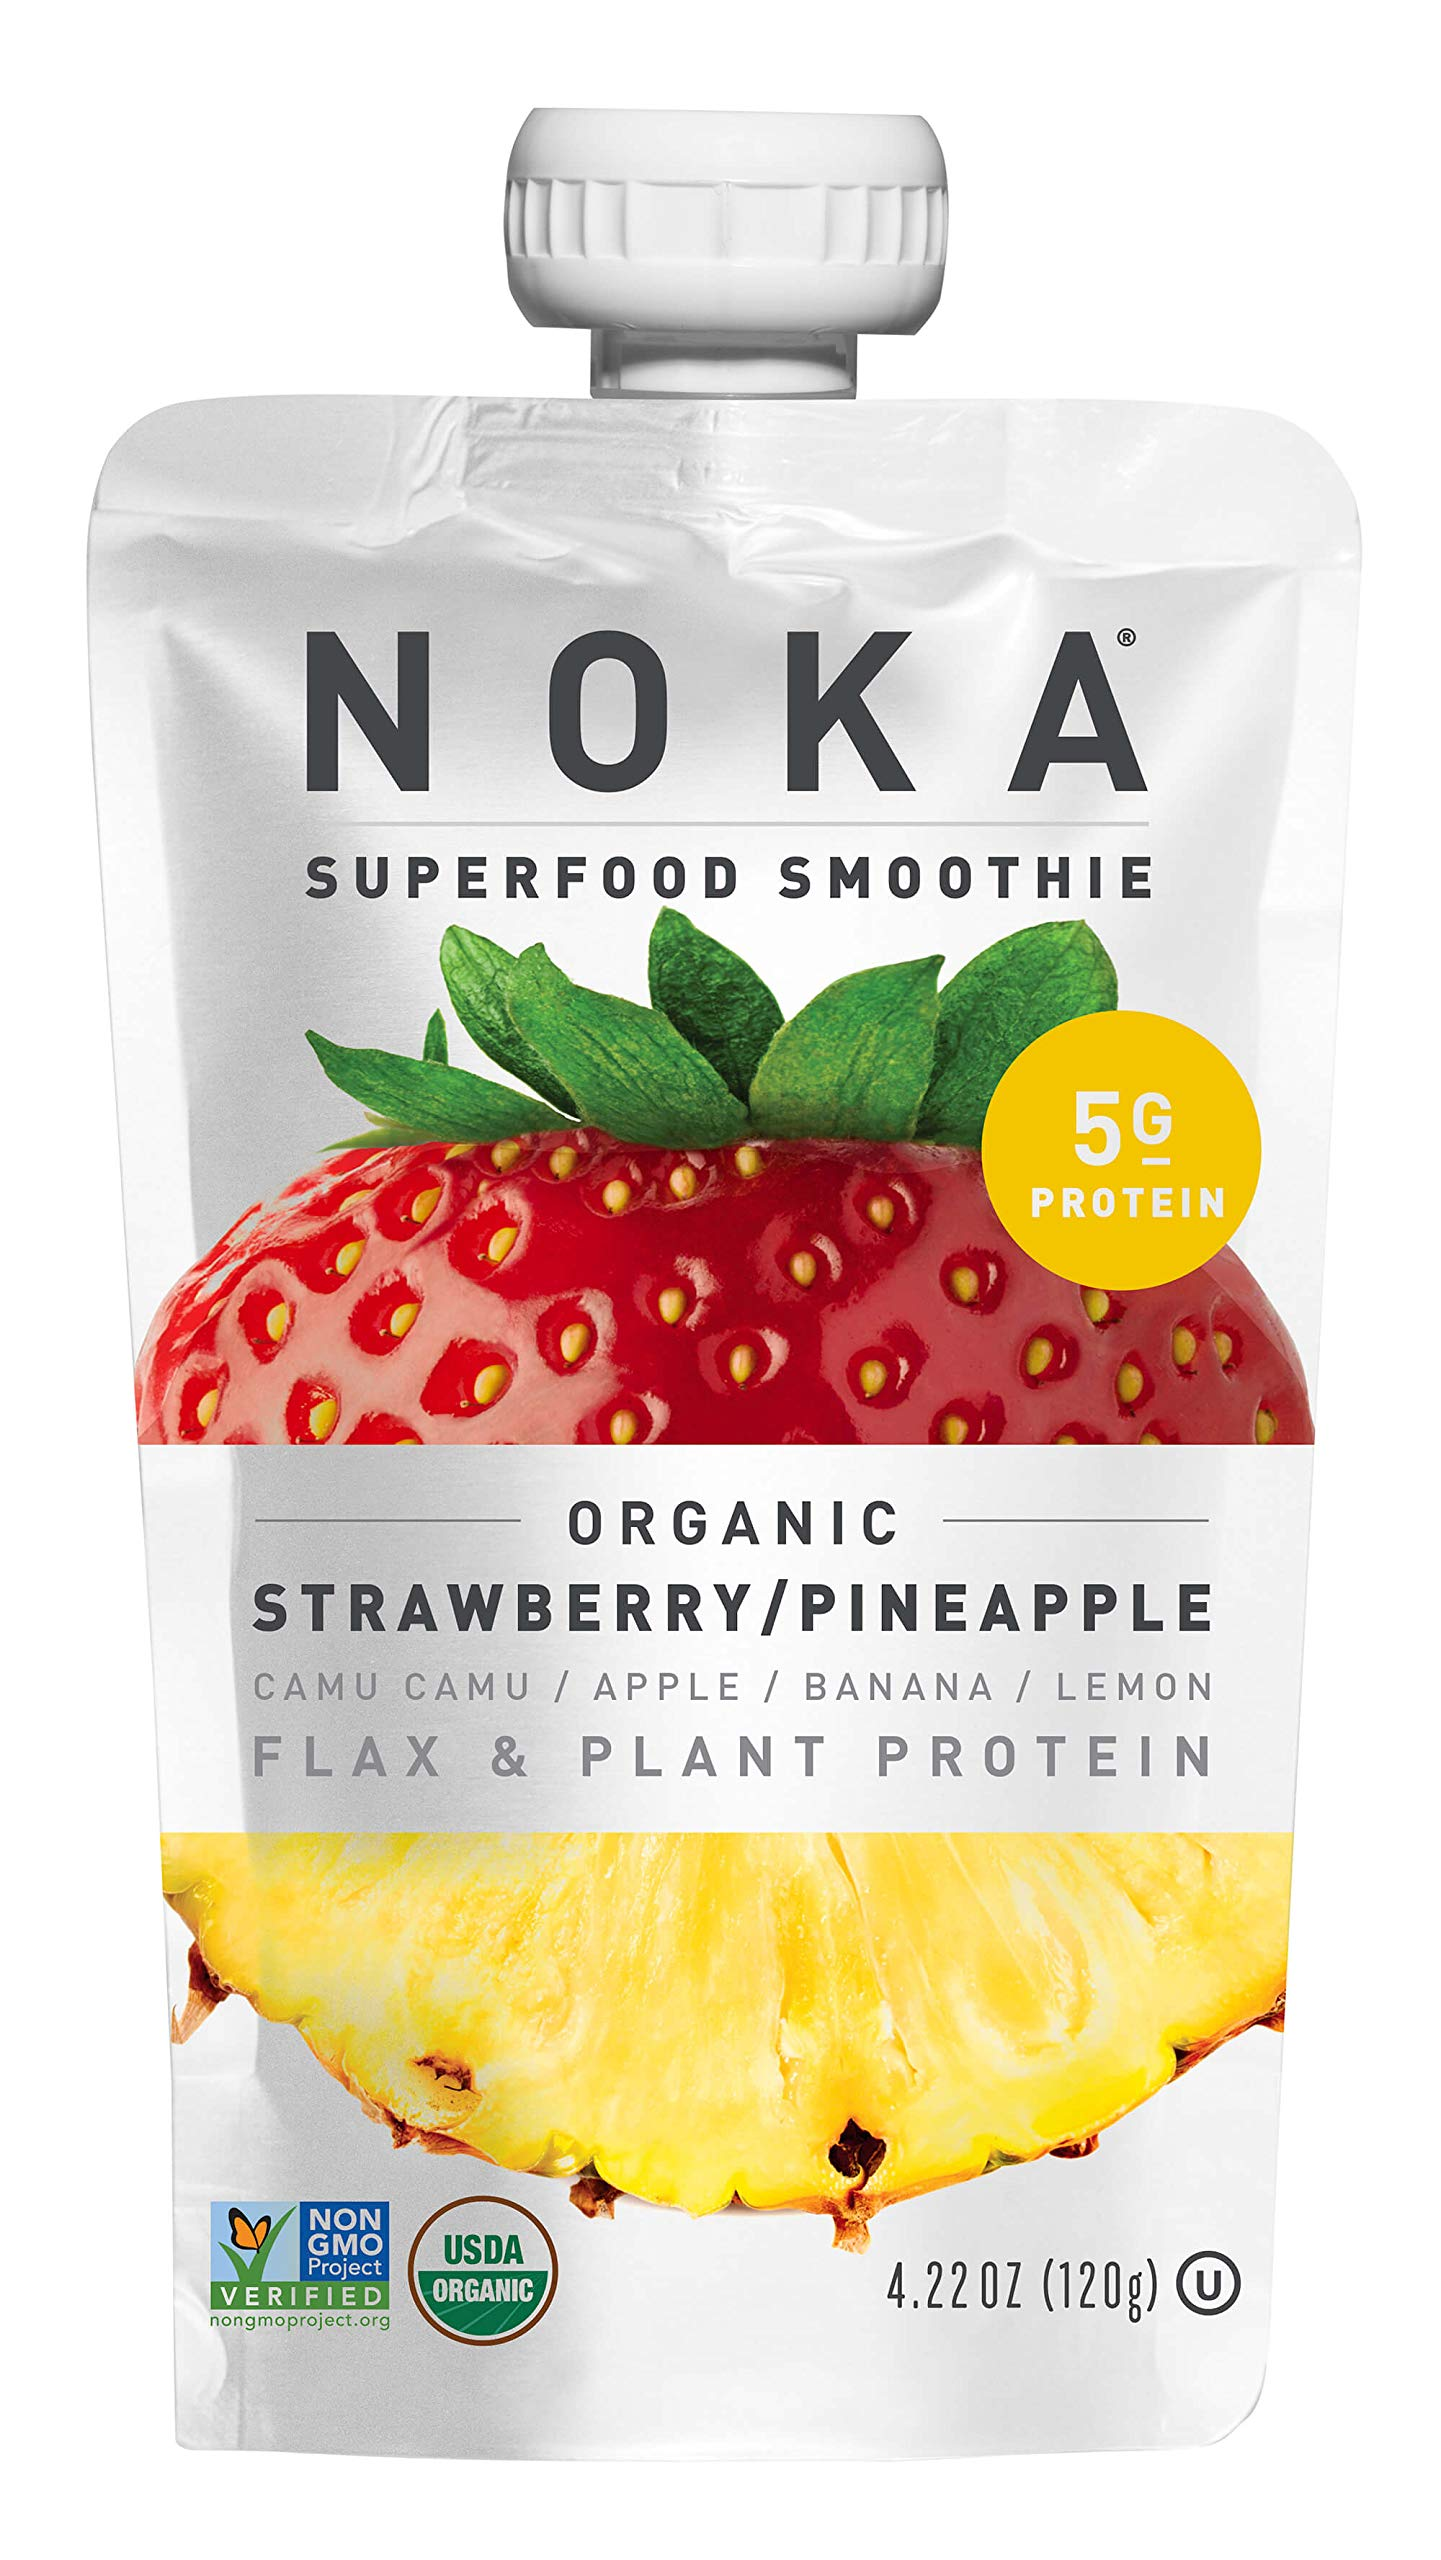 NOKA Superfood Smoothies (Strawberry Pineapple)   100% Organic Fruit And Veggie Smoothie Squeeze Pouches   No Added Sugar, Non GMO, Gluten Free, Vegan, 5g Plant Protein   4.2oz Each - Pack of 6